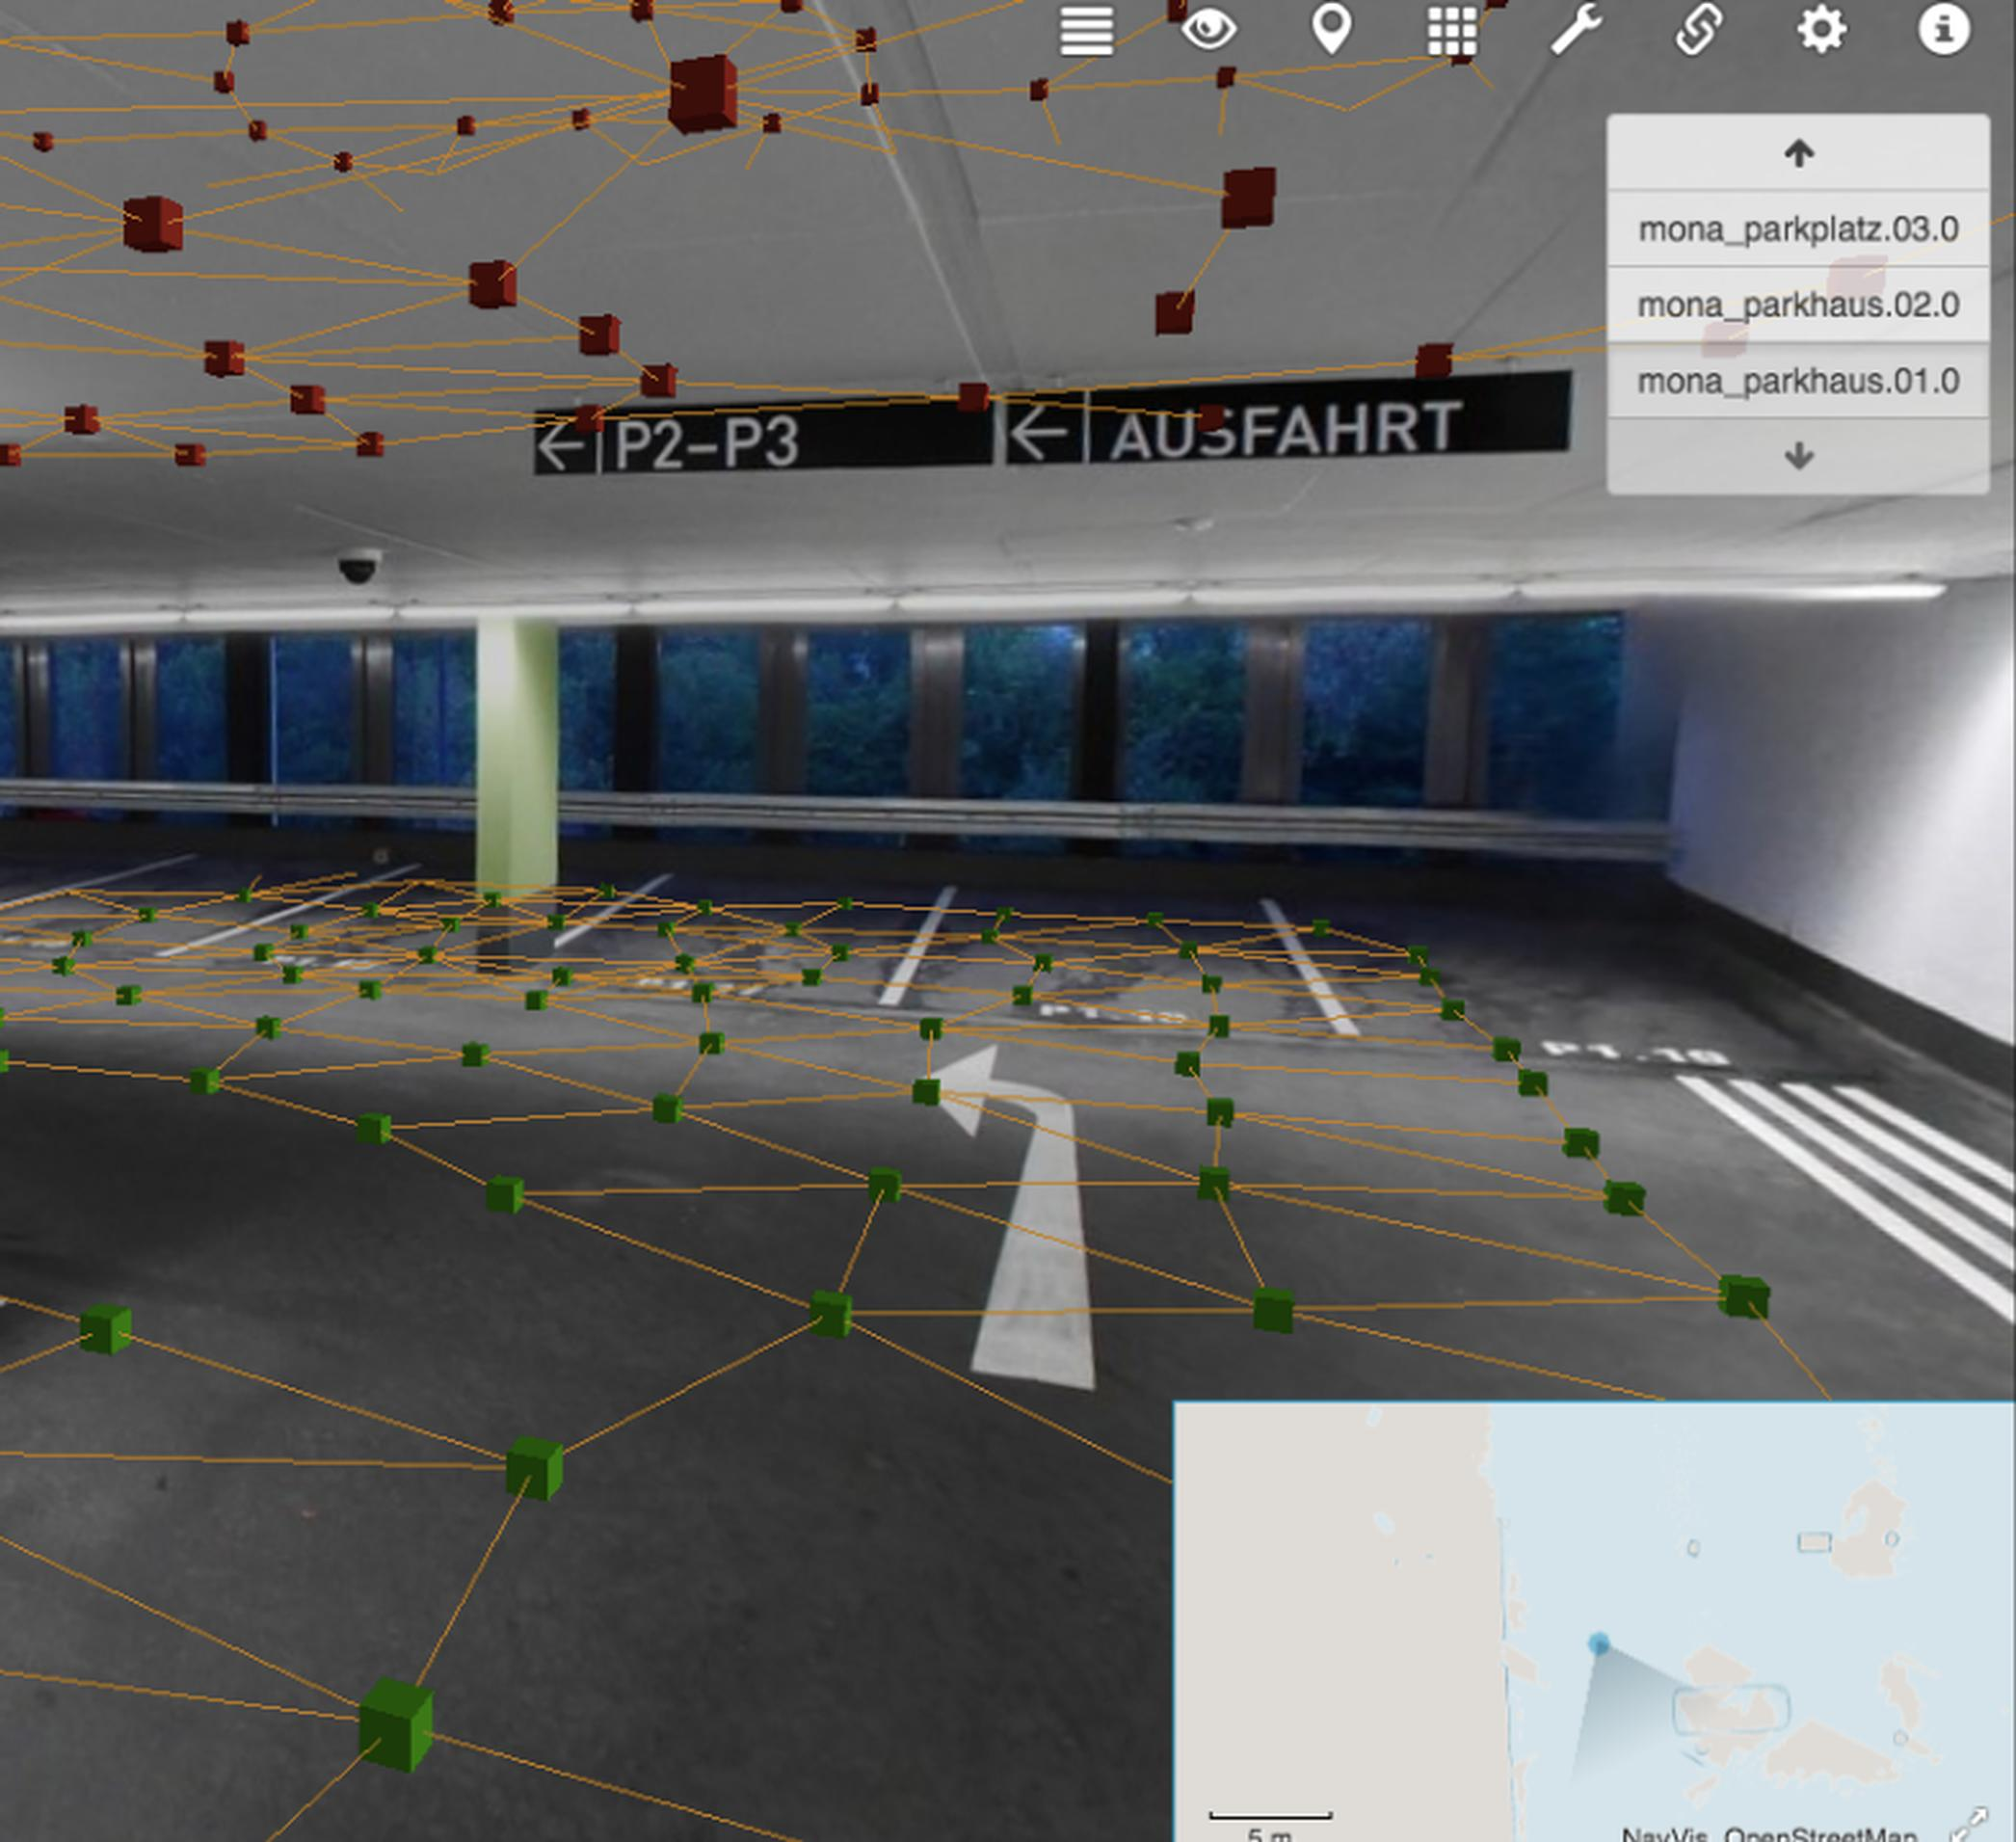 HAD Parking Maps works with sensors in automated cars to help them navigate within enclosed car parks